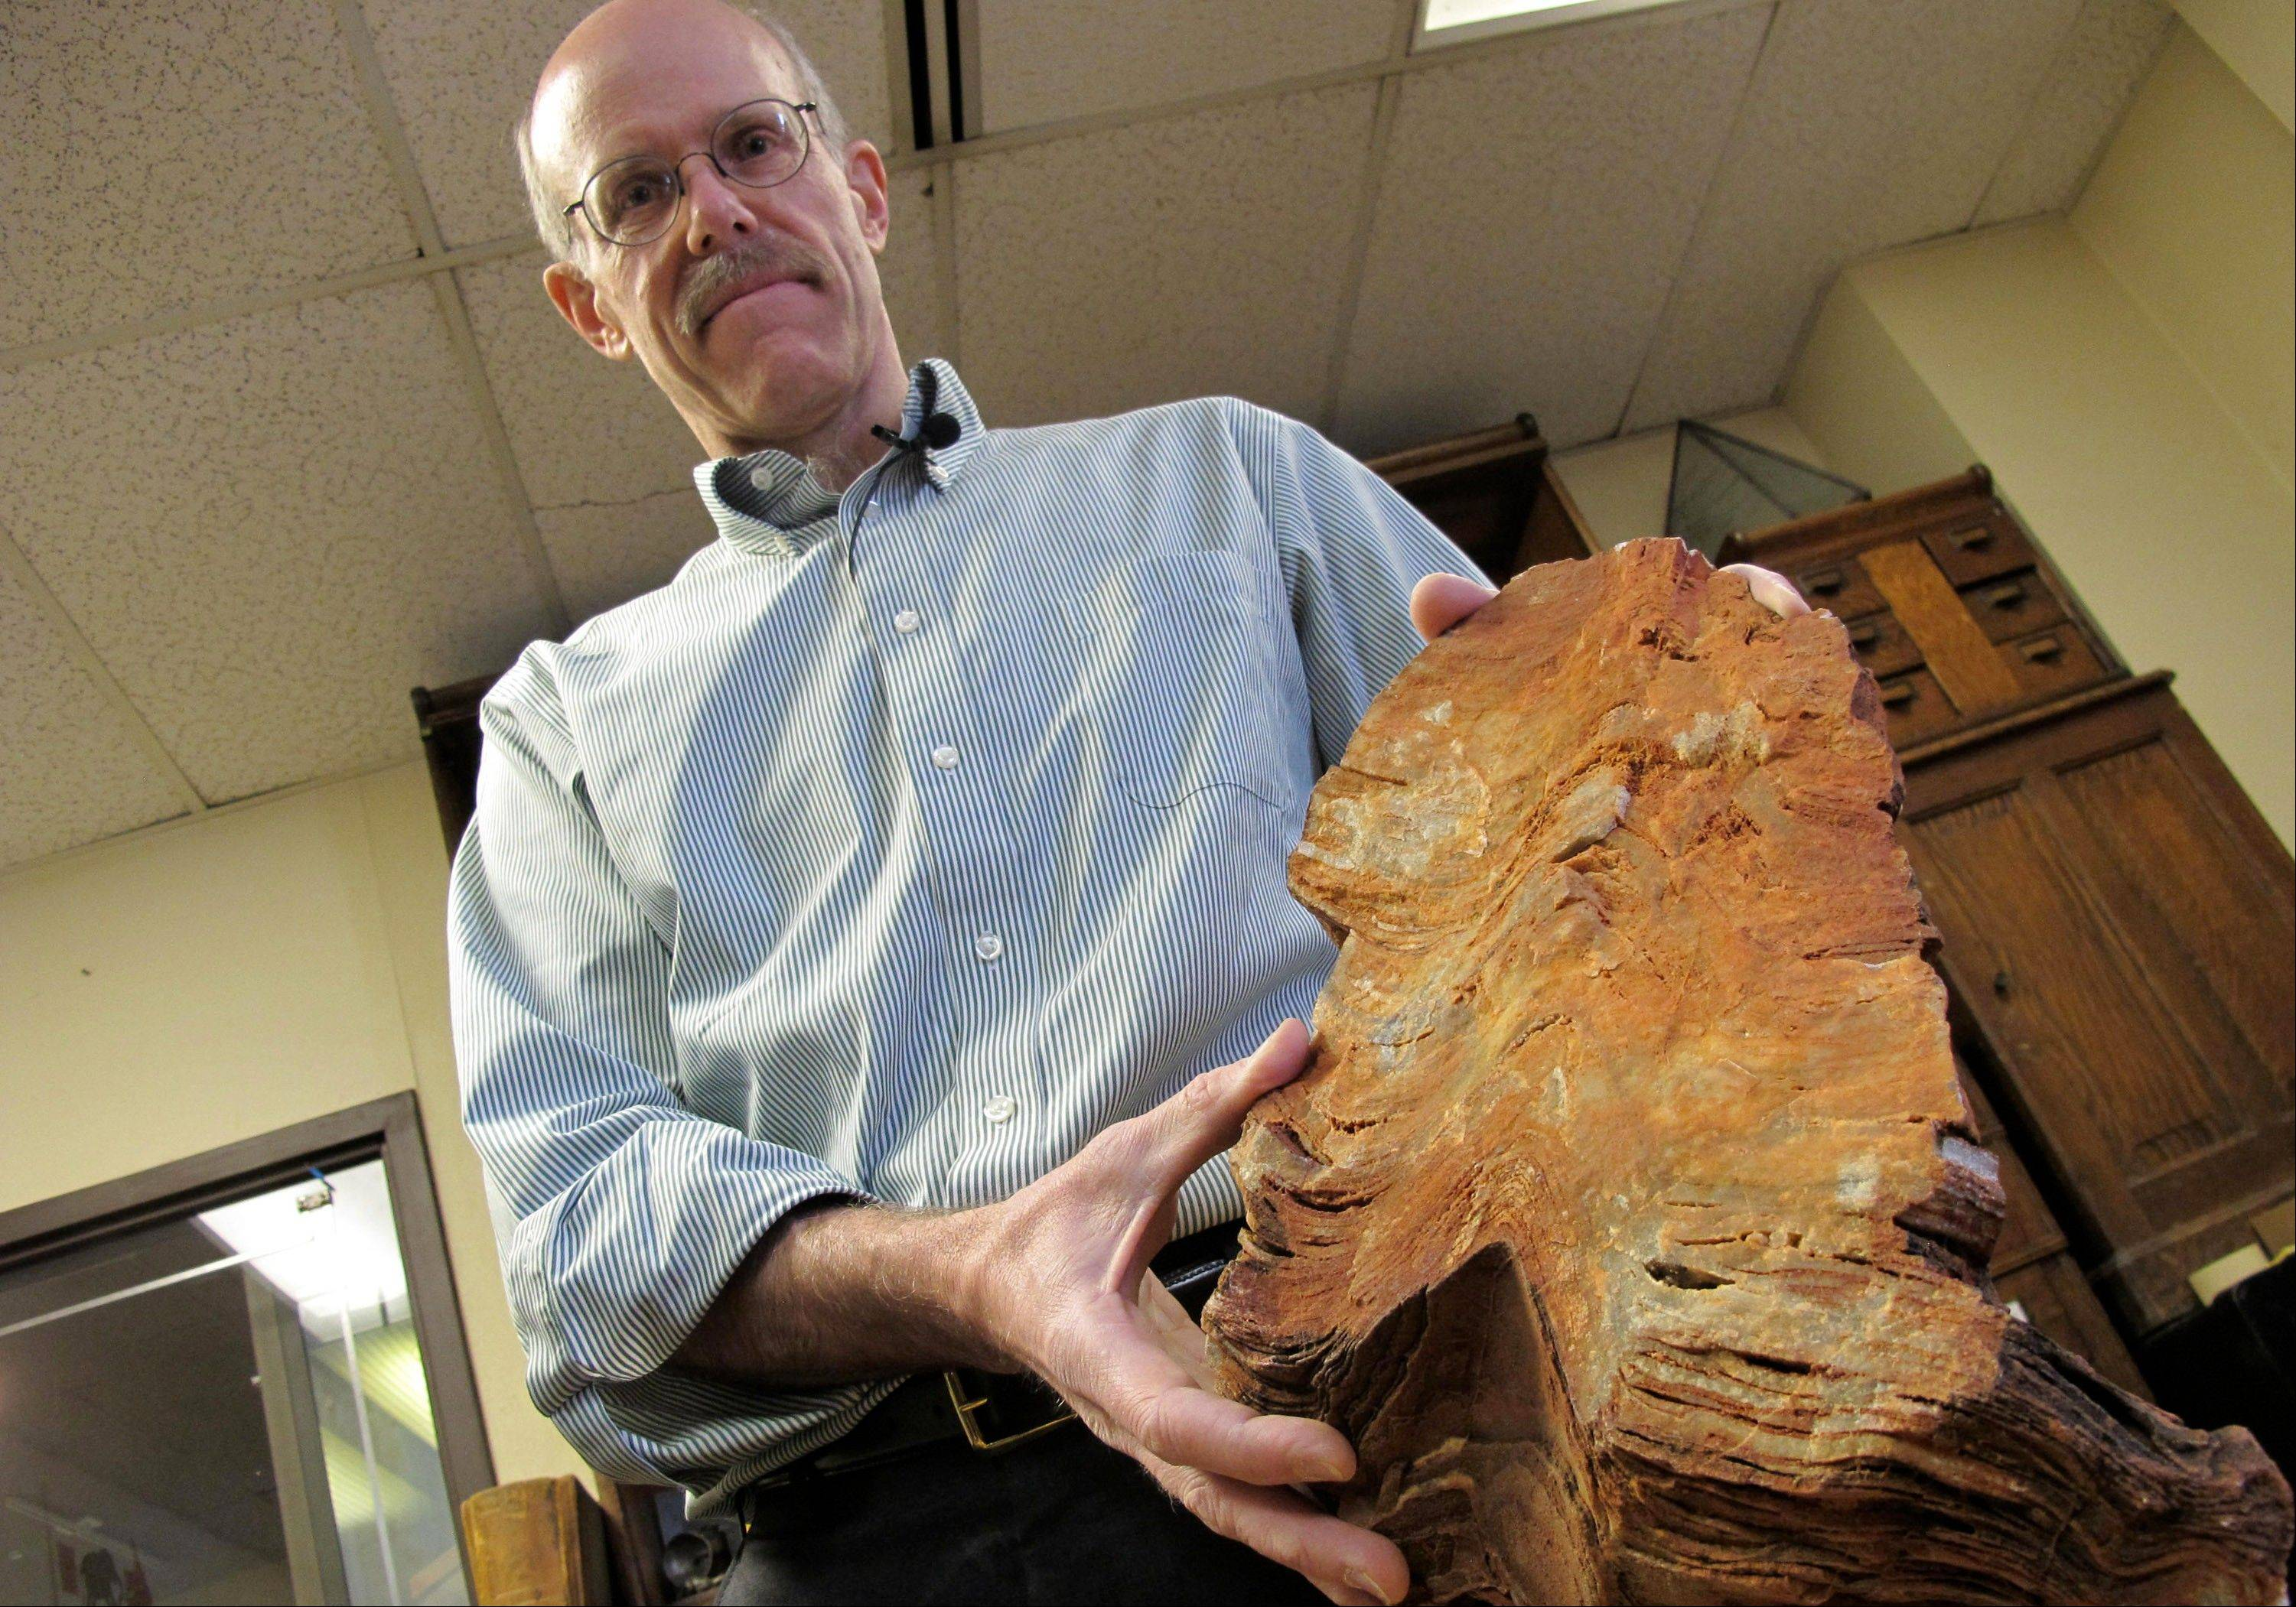 University of Wisconsin-Madison Geoscientist Clark Johnson holds what he says is a 3.5 billion year old rock in Madison, Wis. Johnson is leading a team of scientists and others studying Earth rocks that are billions of years old looking for crucial information to understand how life might have arisen elsewhere in the universe and guide the search for life on Mars one day.